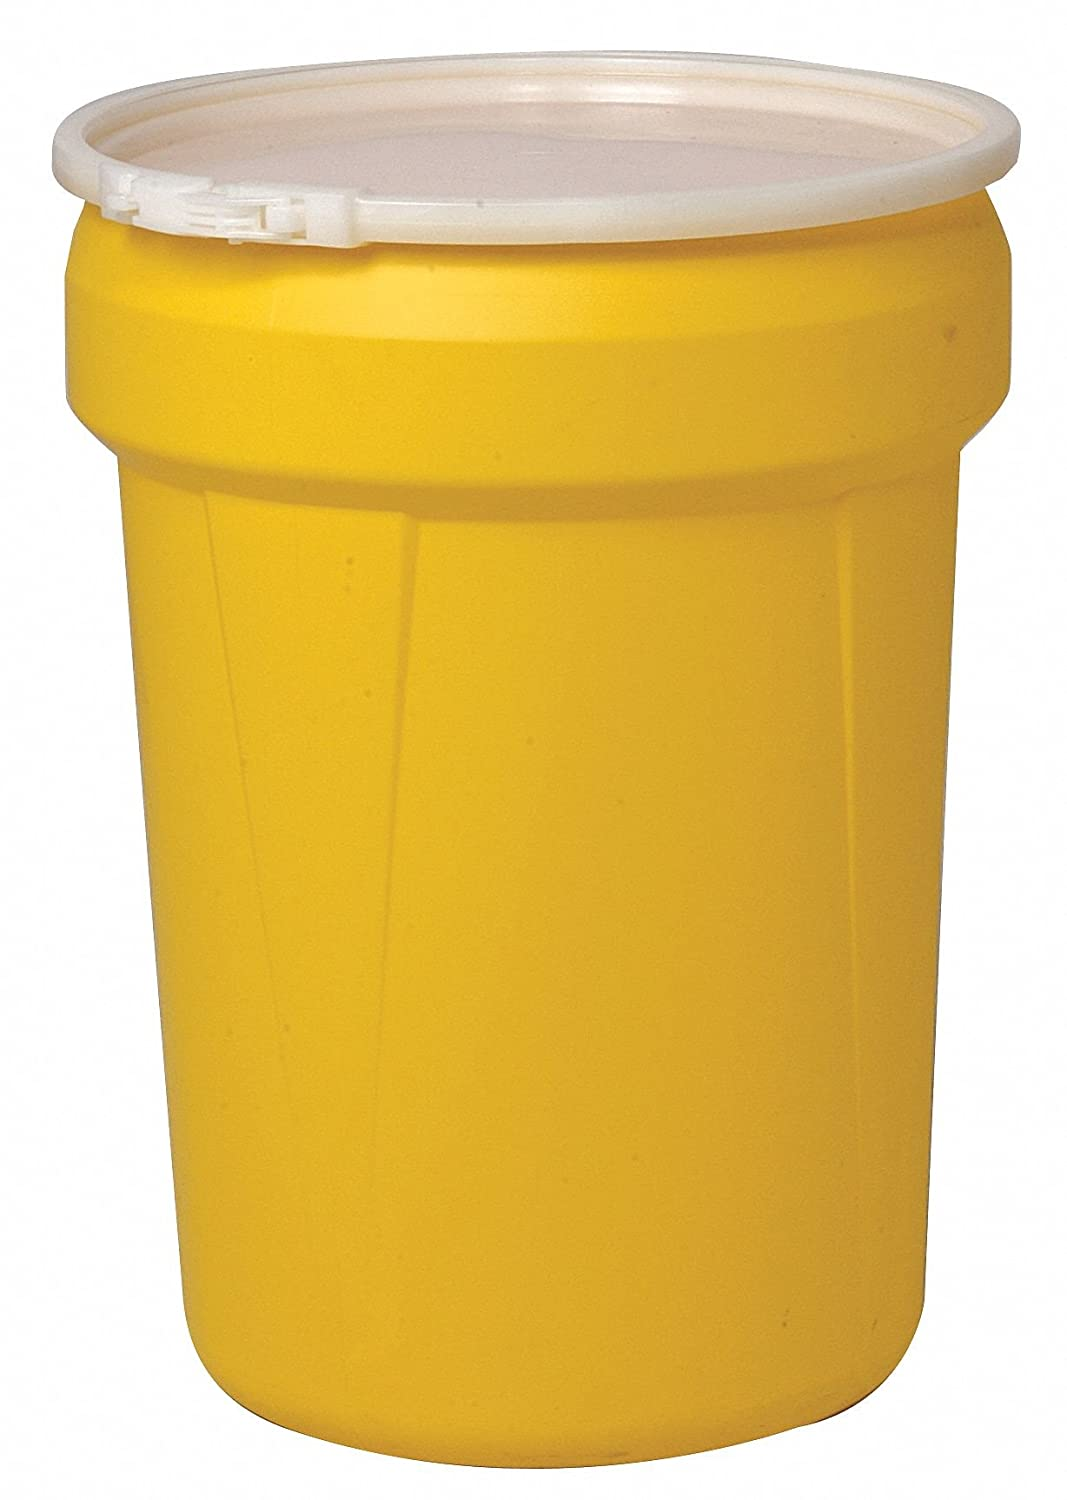 "Eagle 1601 Lab Pack Drum with Plastic Lever-lock, 30 Gallon,21-1/8"" OD x28-1/2"" Height, Yellow"